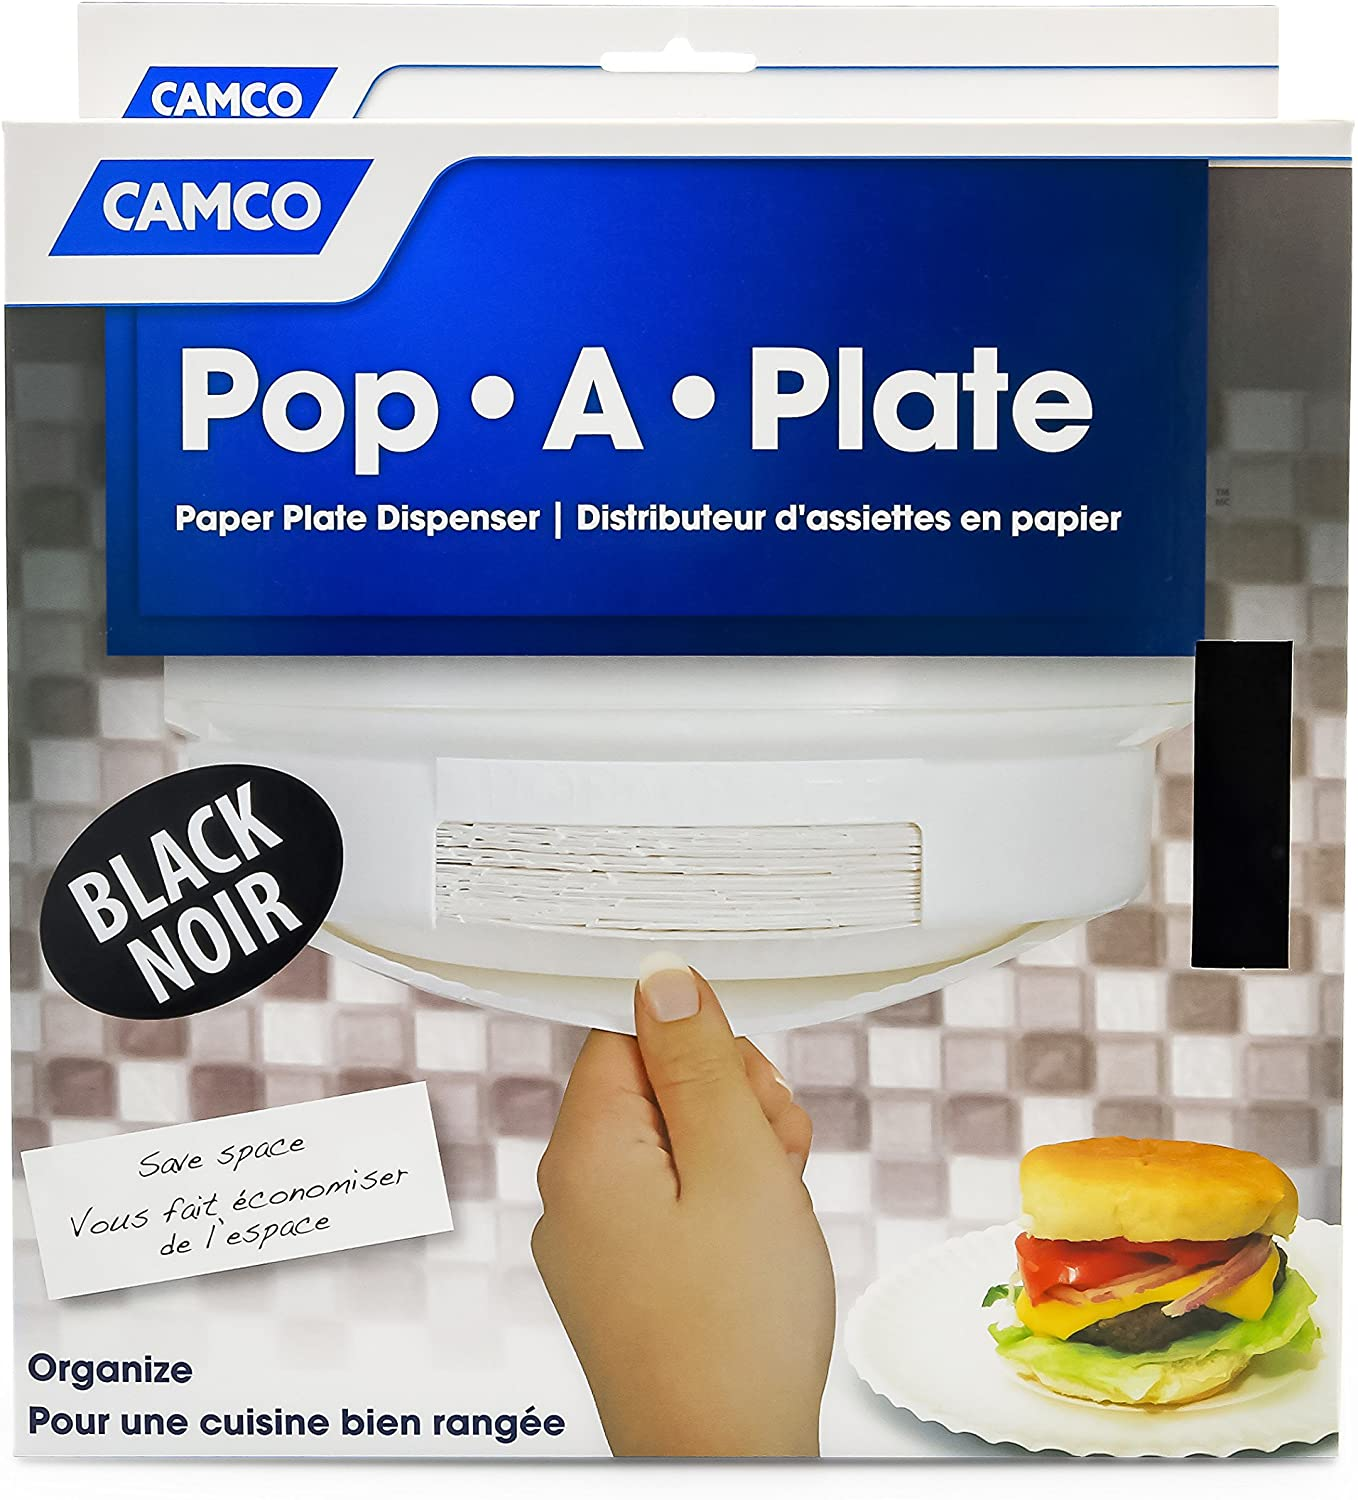 Amazon Com Camco Pop A Plate Paper Plastic Plate Dispener Holds 125 9 Plates Mounts To Walls And Cabinets Easily Organize And Conserve Space In Your Kitchen Perfect For Rvs And Trailers Black 57006 Automotive